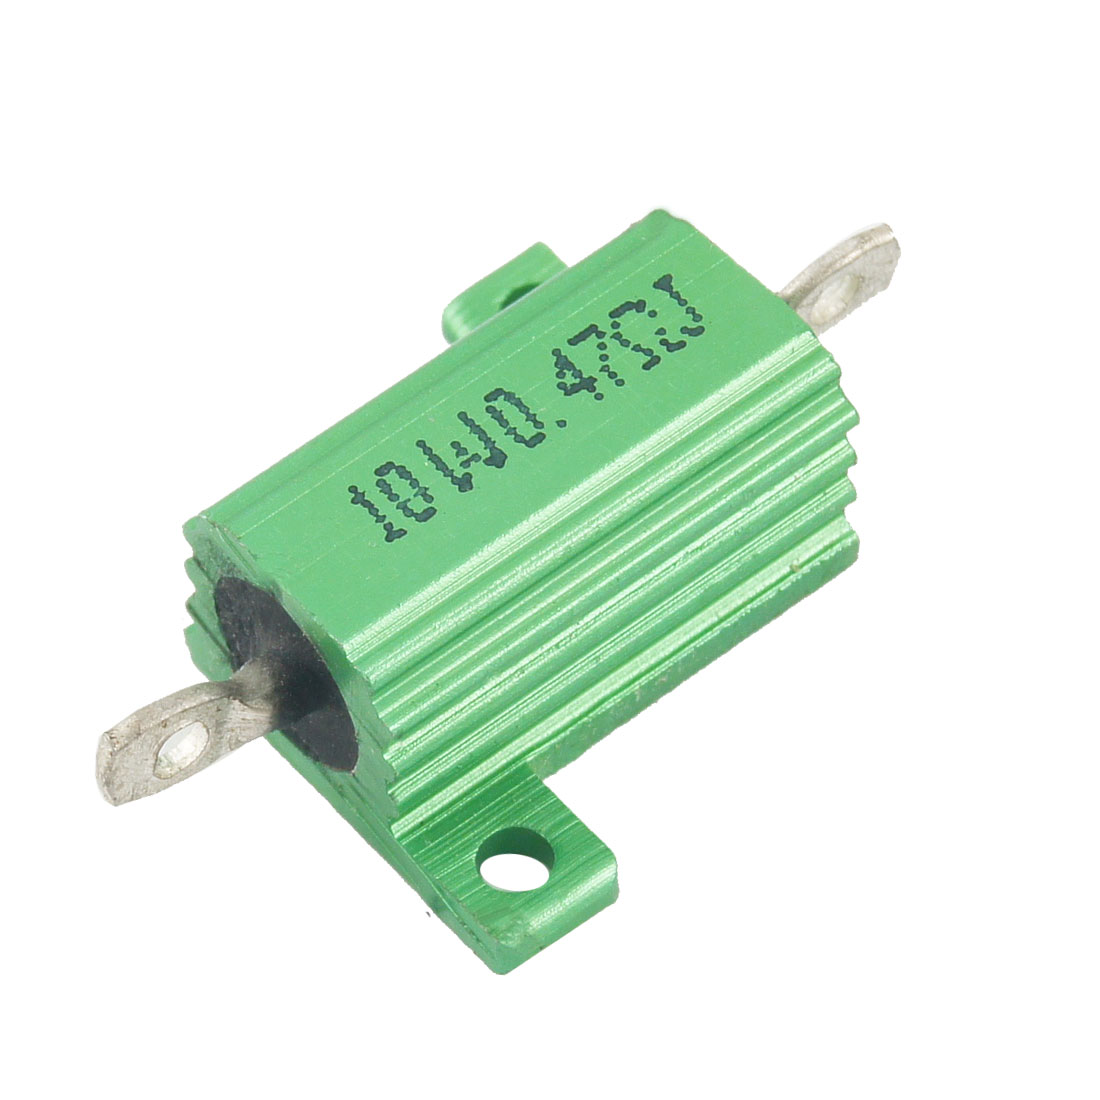 Green 10 Watt 0.47 Ohm 5% Aluminum Shell Wire Wound Resistor